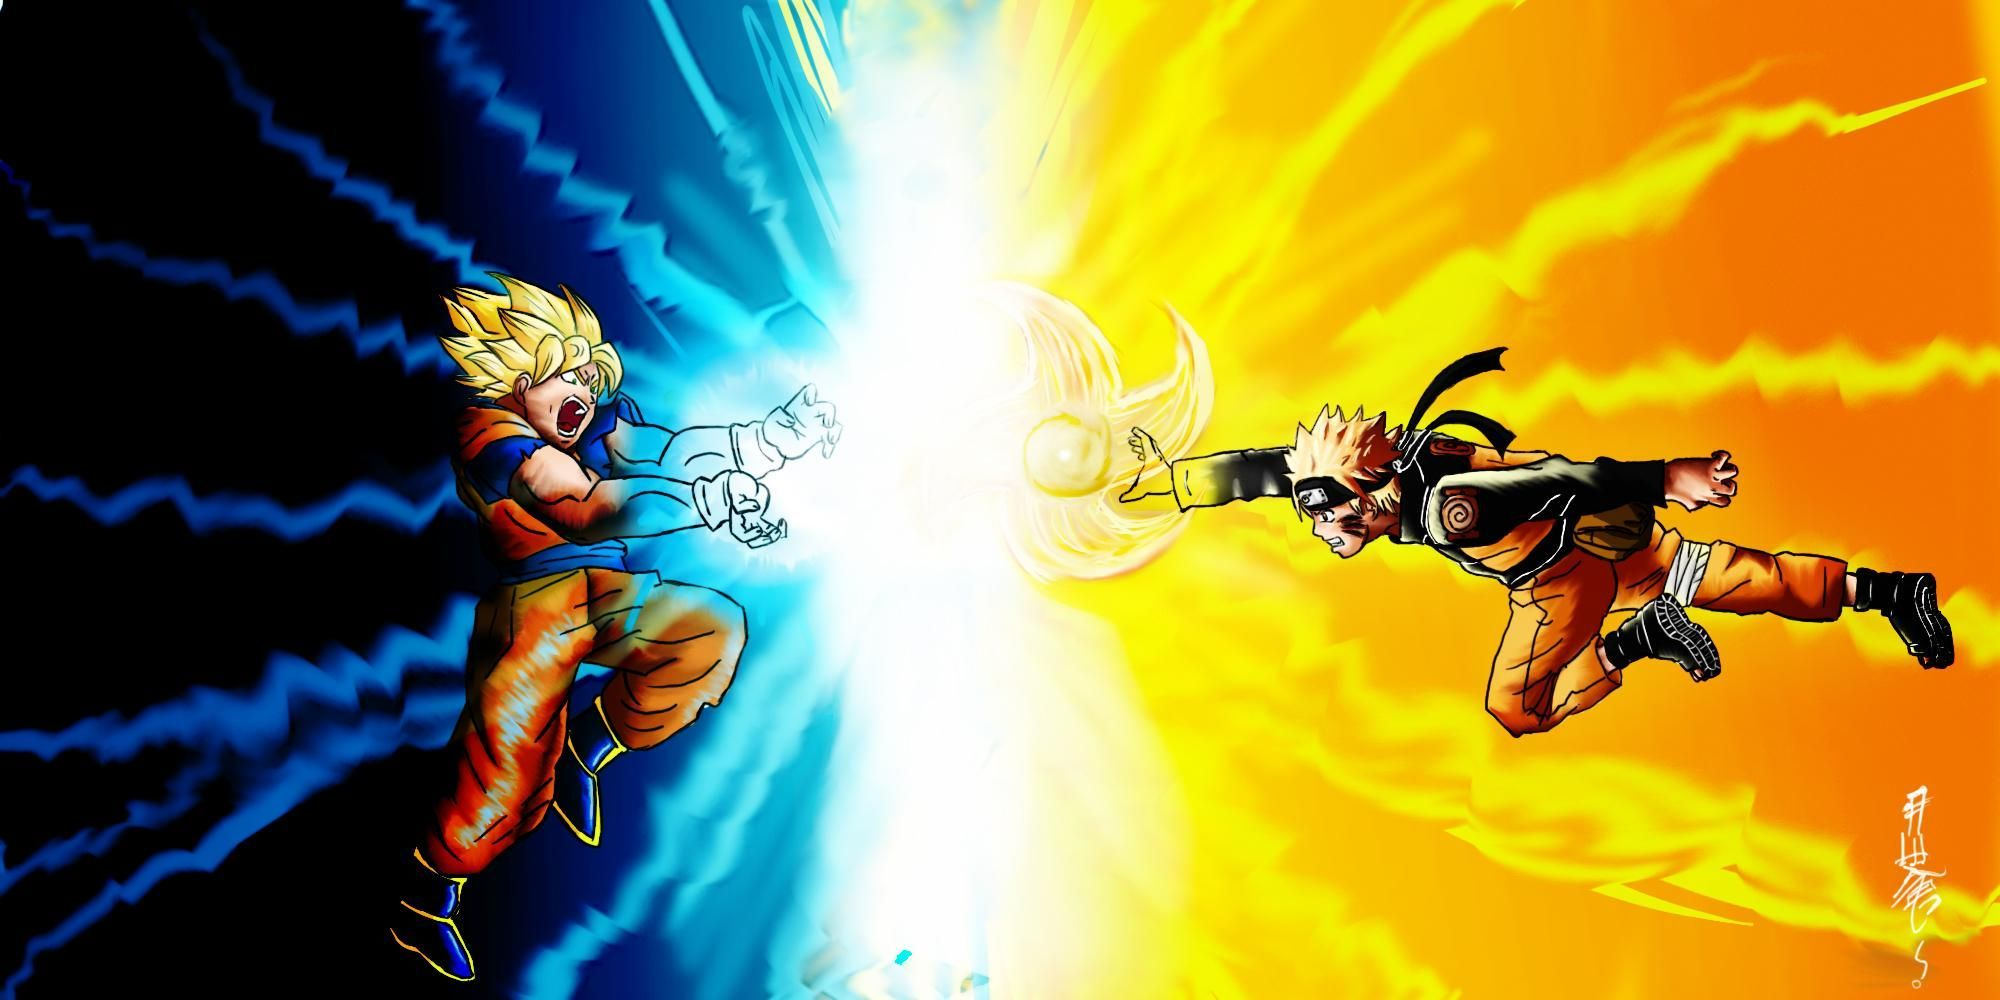 naruto vs goku live wallpaper download - naruto vs goku live